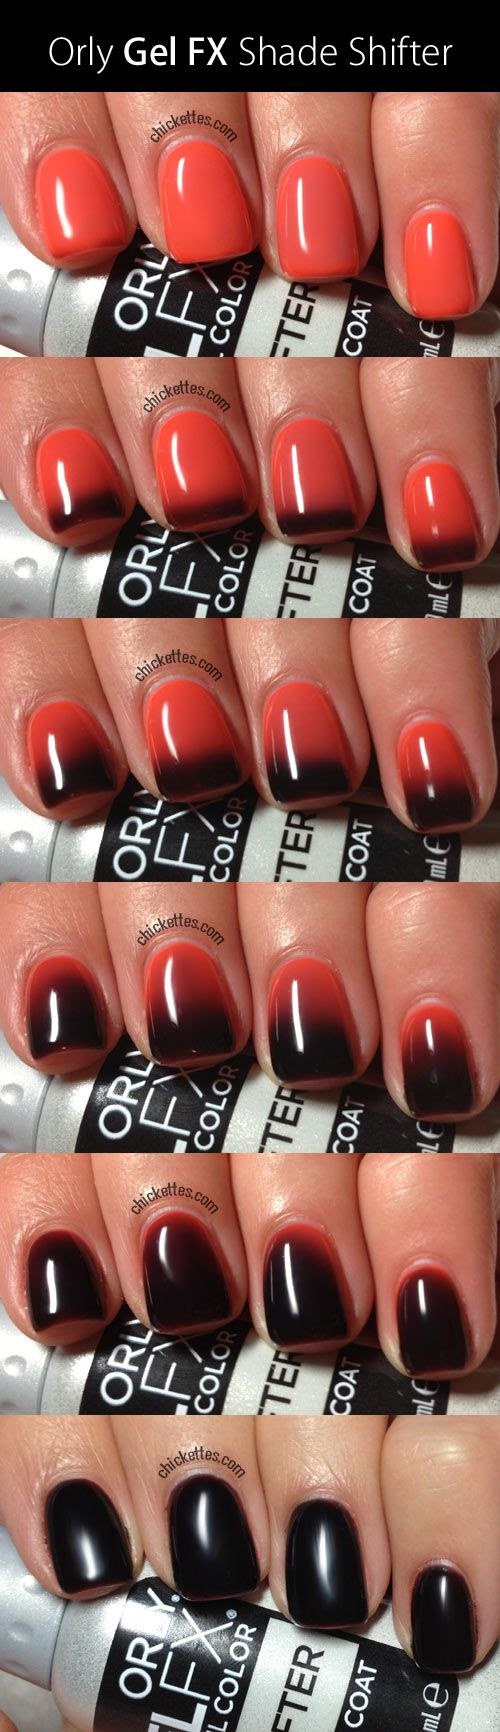 Orly Gel FX Shade Shifter...changes with the warmth of your hands - NO WAY!